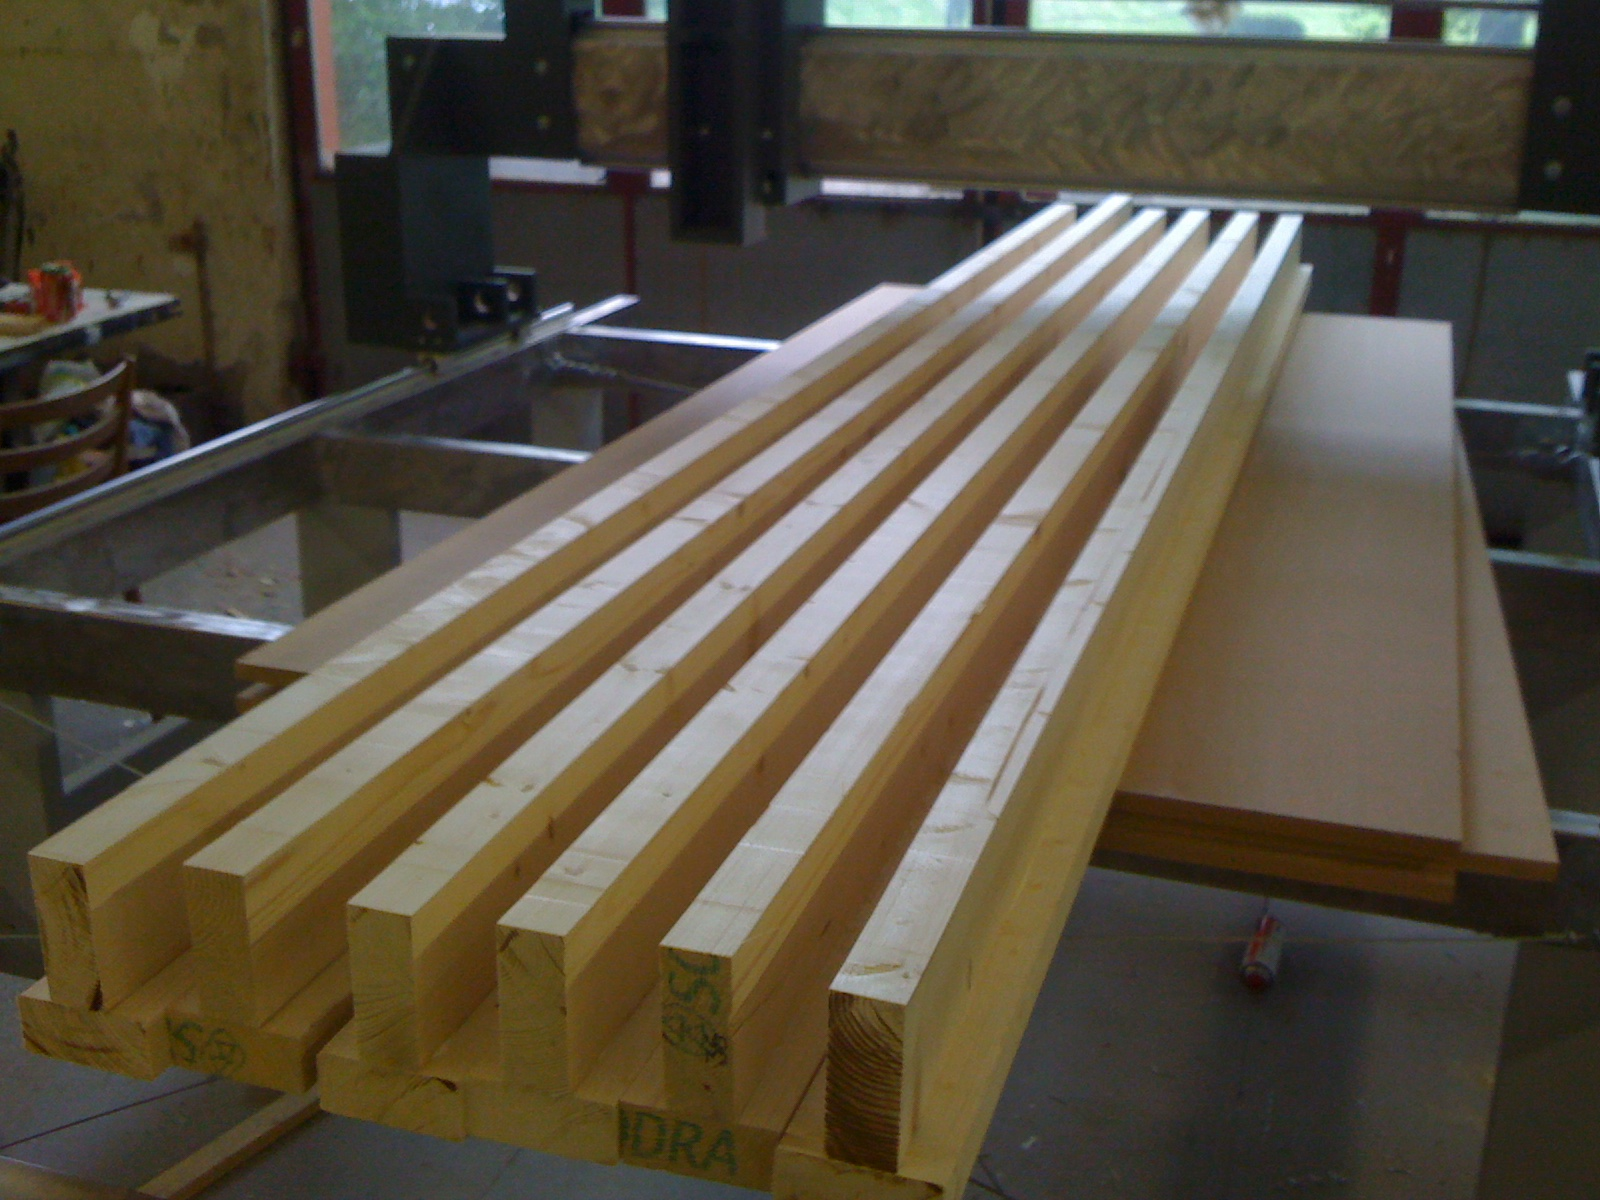 These I-beams were used to stabilize the cutting surface